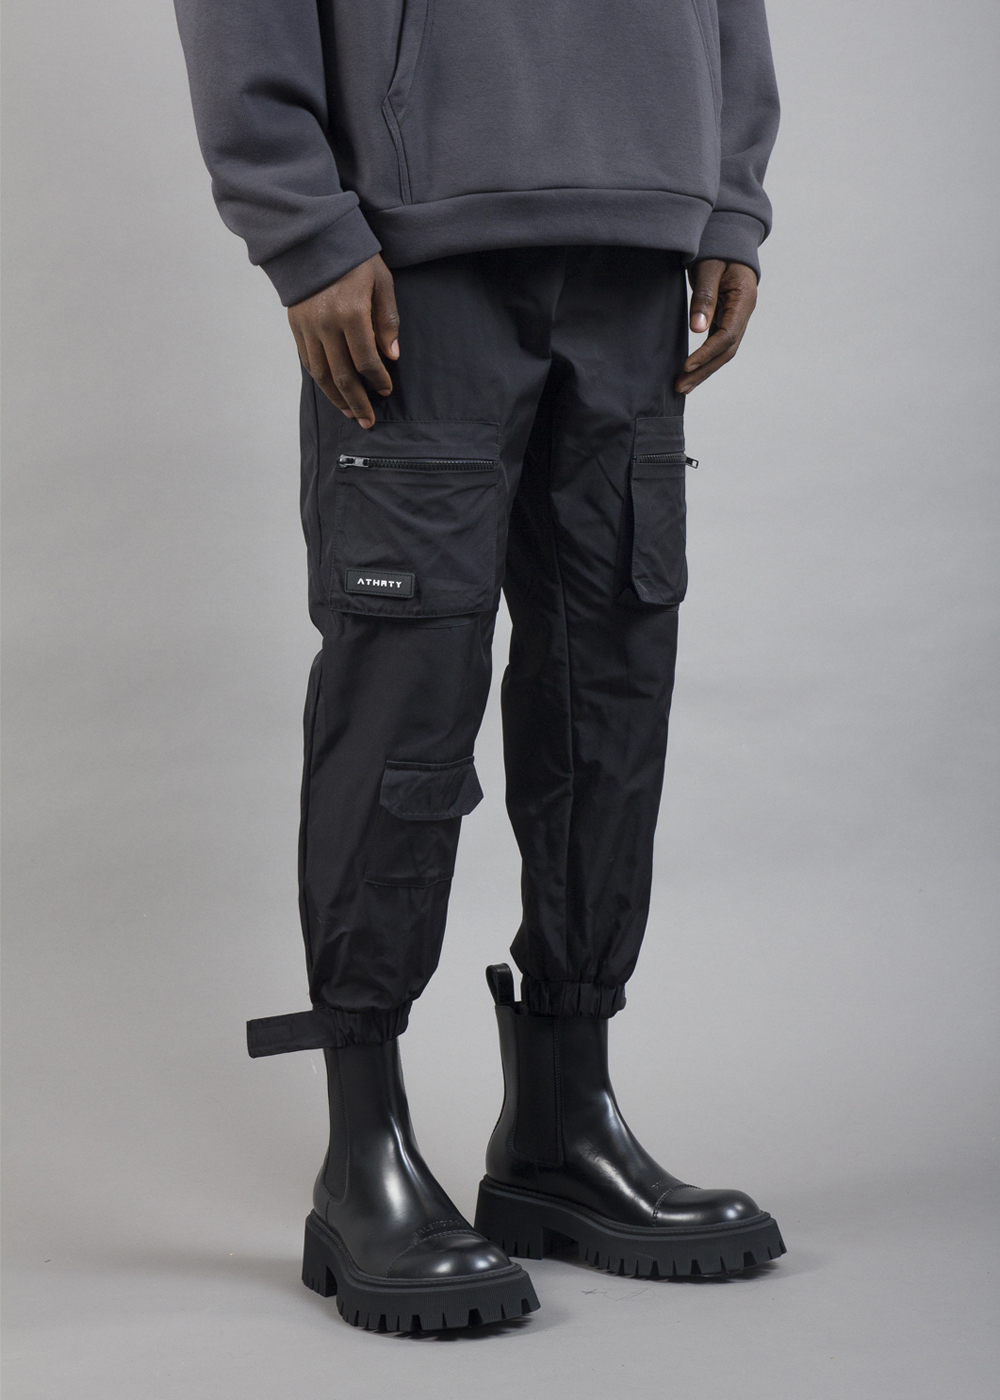 obsidian_pants_black_m2